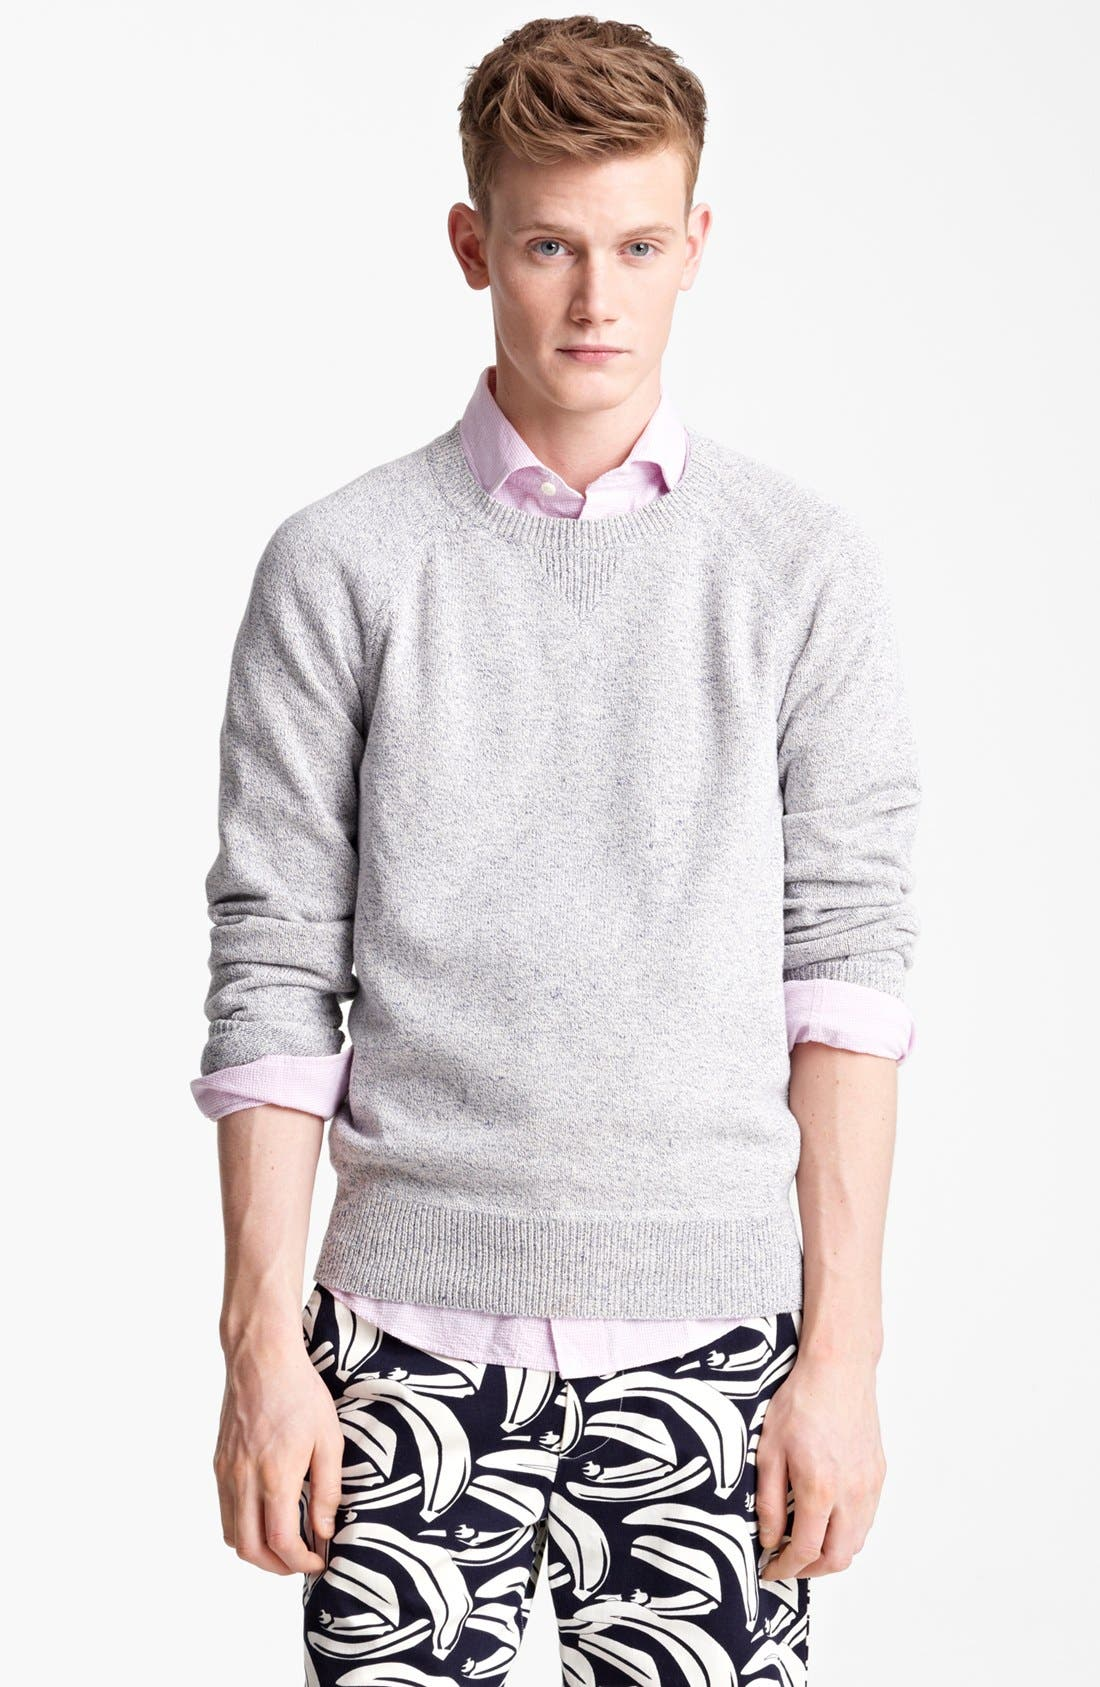 Main Image - Jack Spade 'Dawson' Cotton & Linen Crewneck Sweater